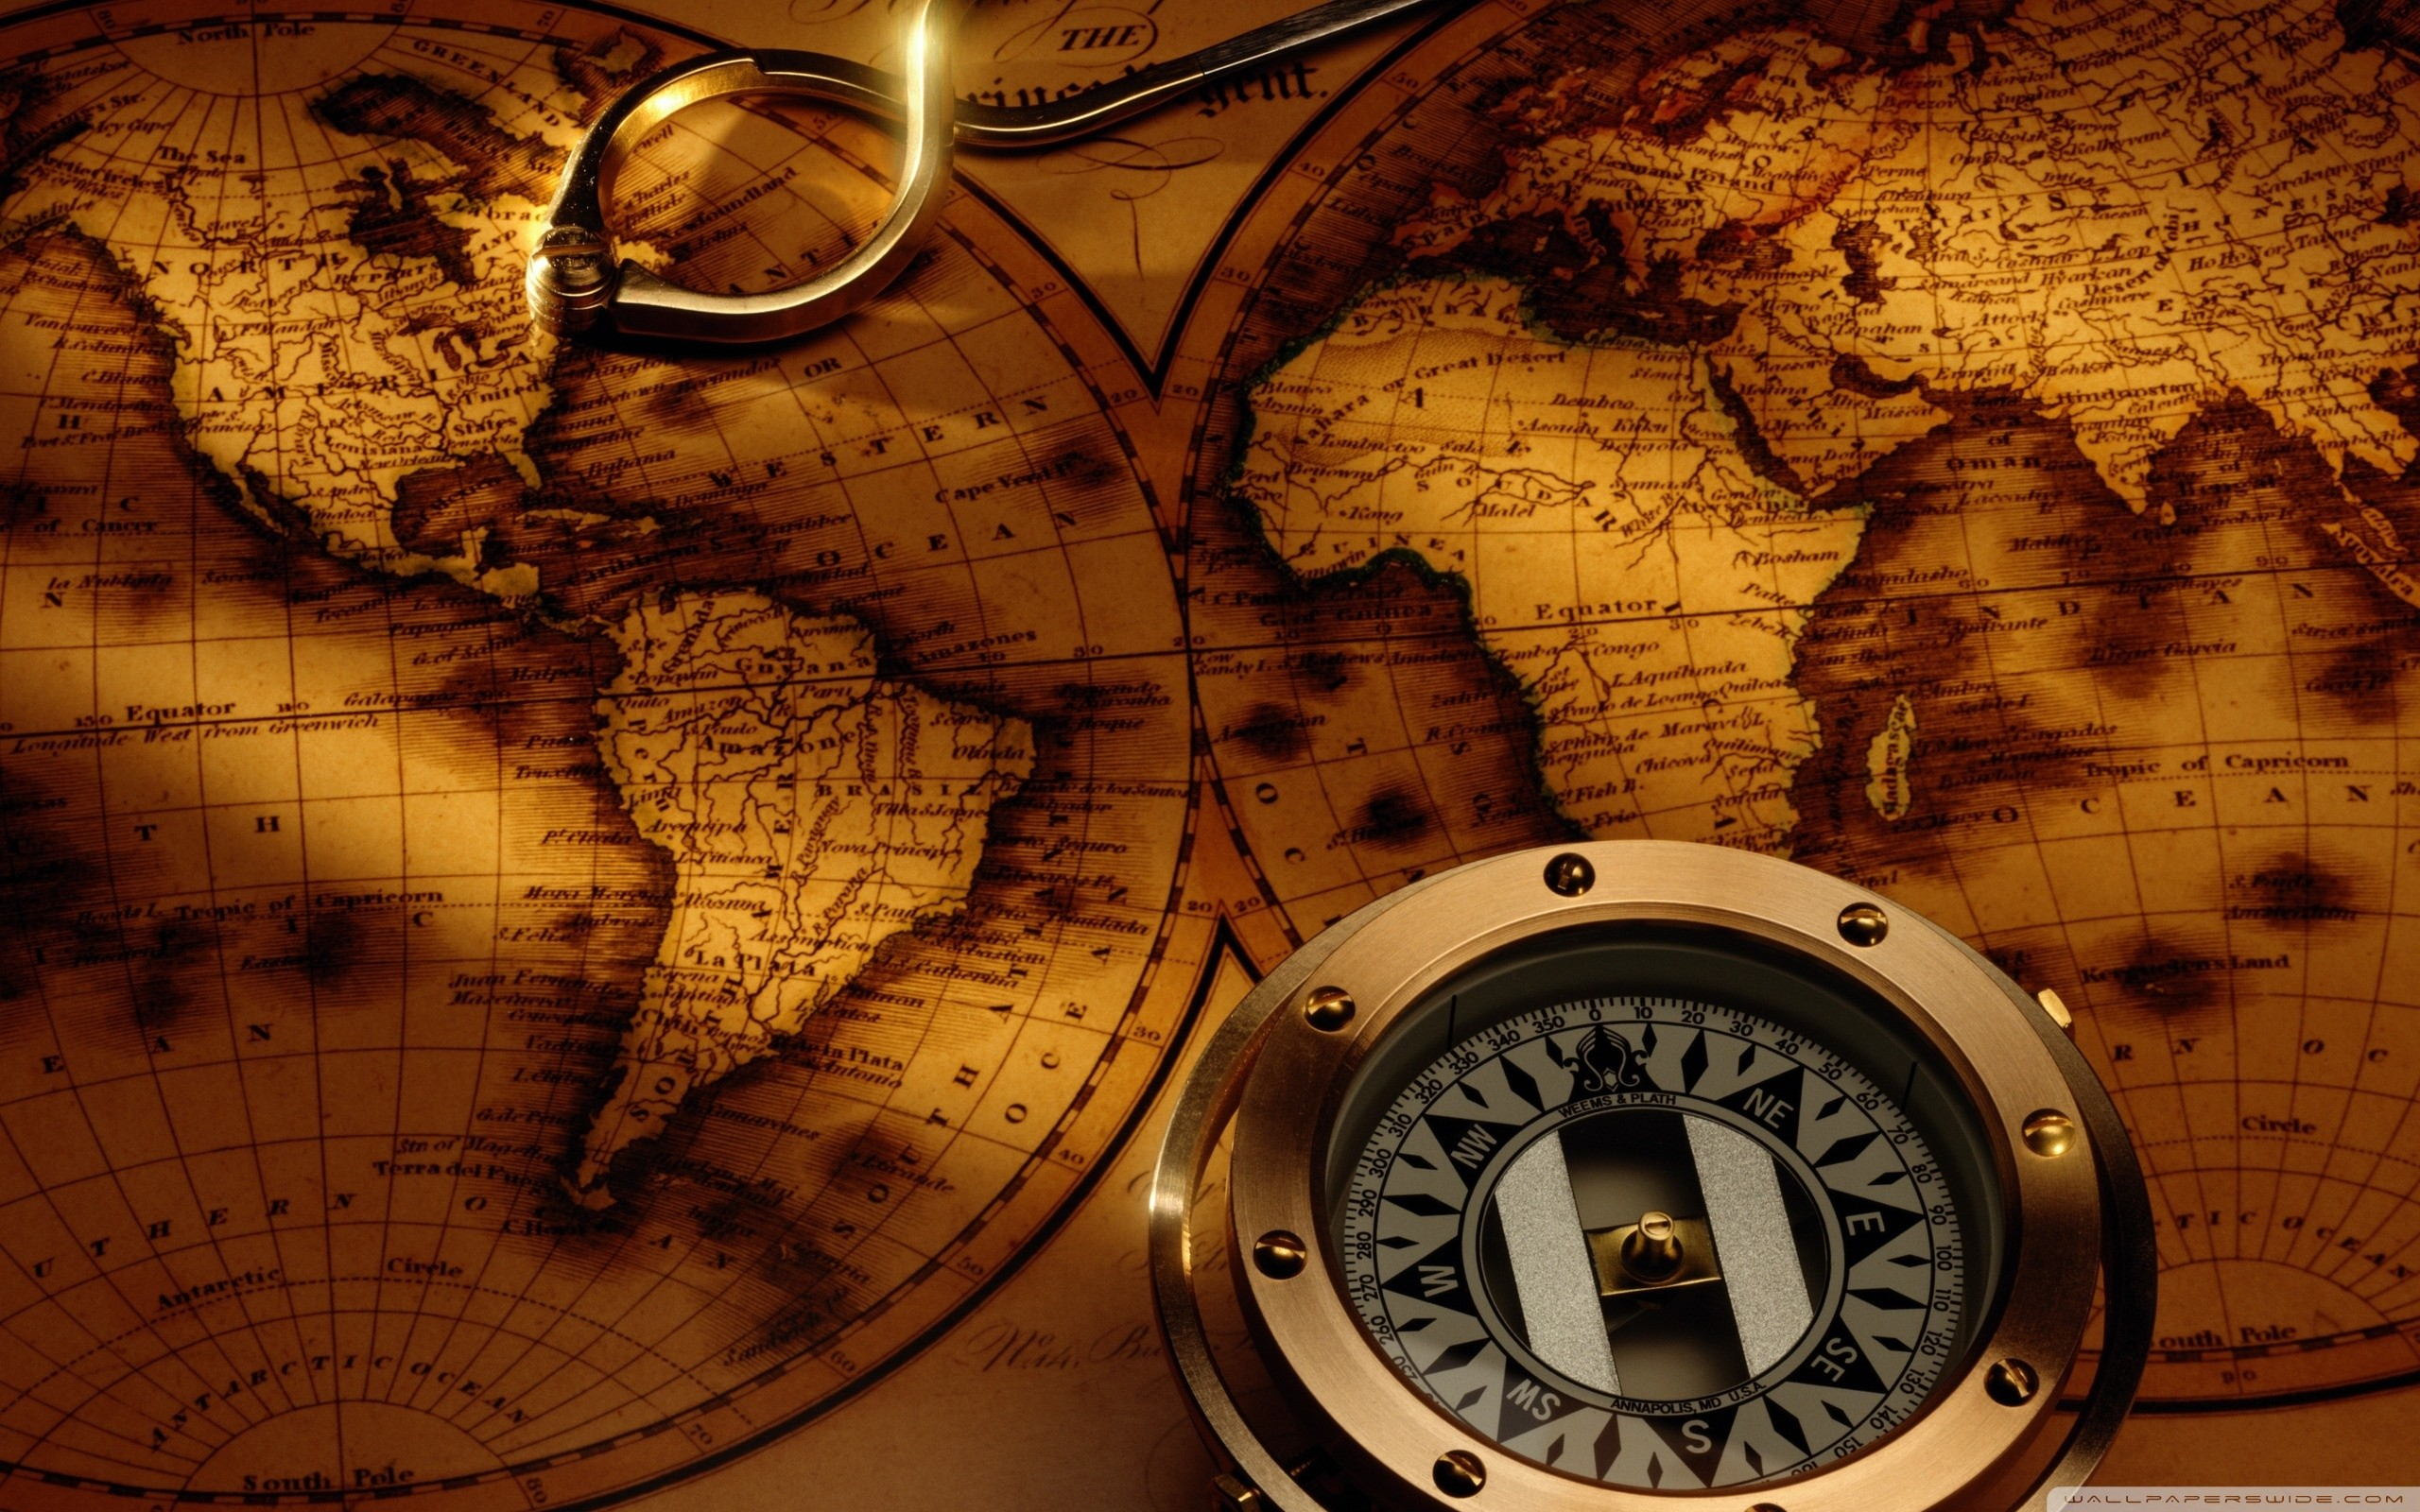 World map wallpapers 66 background pictures 2500x1694 world map wallpaper for windows 10 new free antique map background hd wallpapers background photos best vintage world map wallpaper hd new world gumiabroncs Gallery